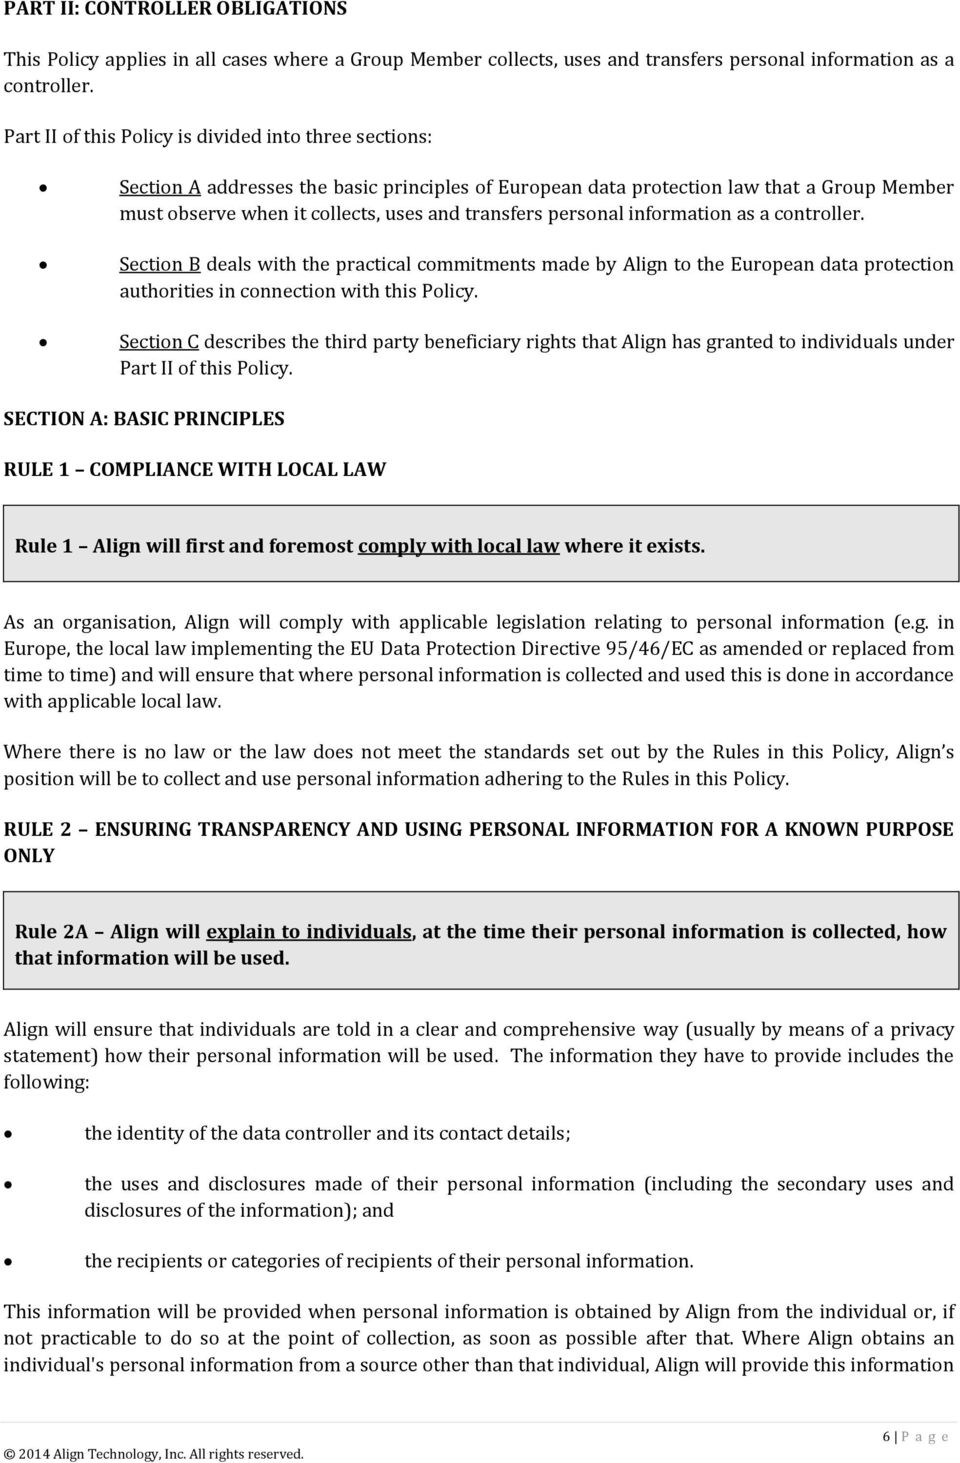 personal information as a controller. Section B deals with the practical commitments made by Align to the European data protection authorities in connection with this Policy.